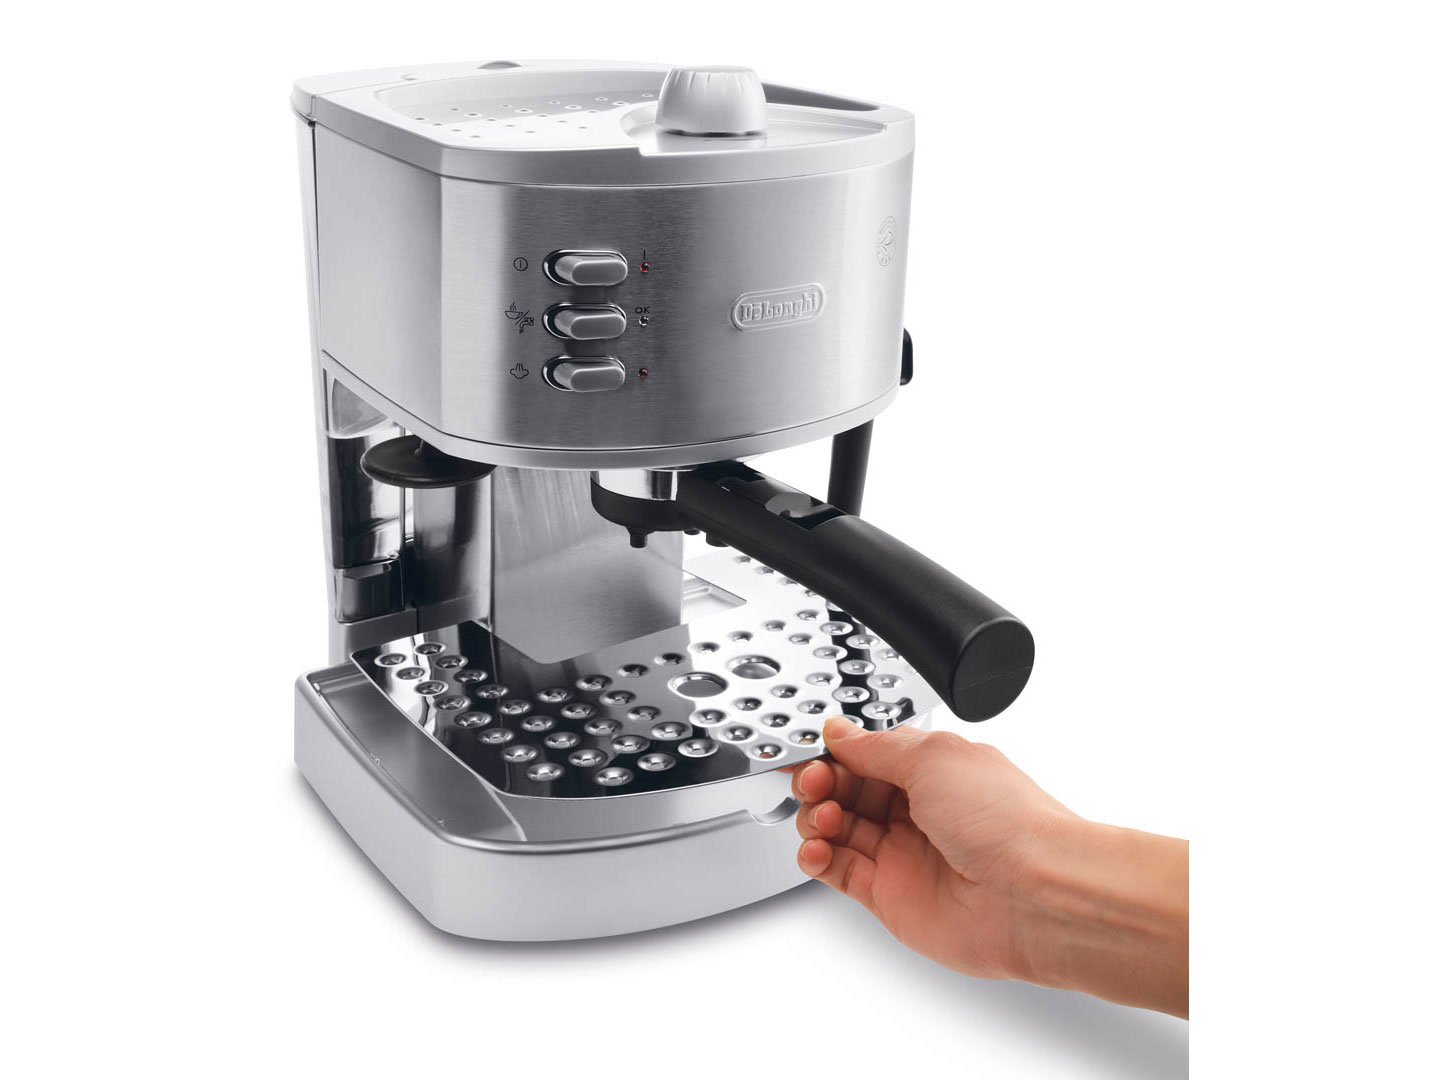 delonghi espresso and cappuccino maker instructions